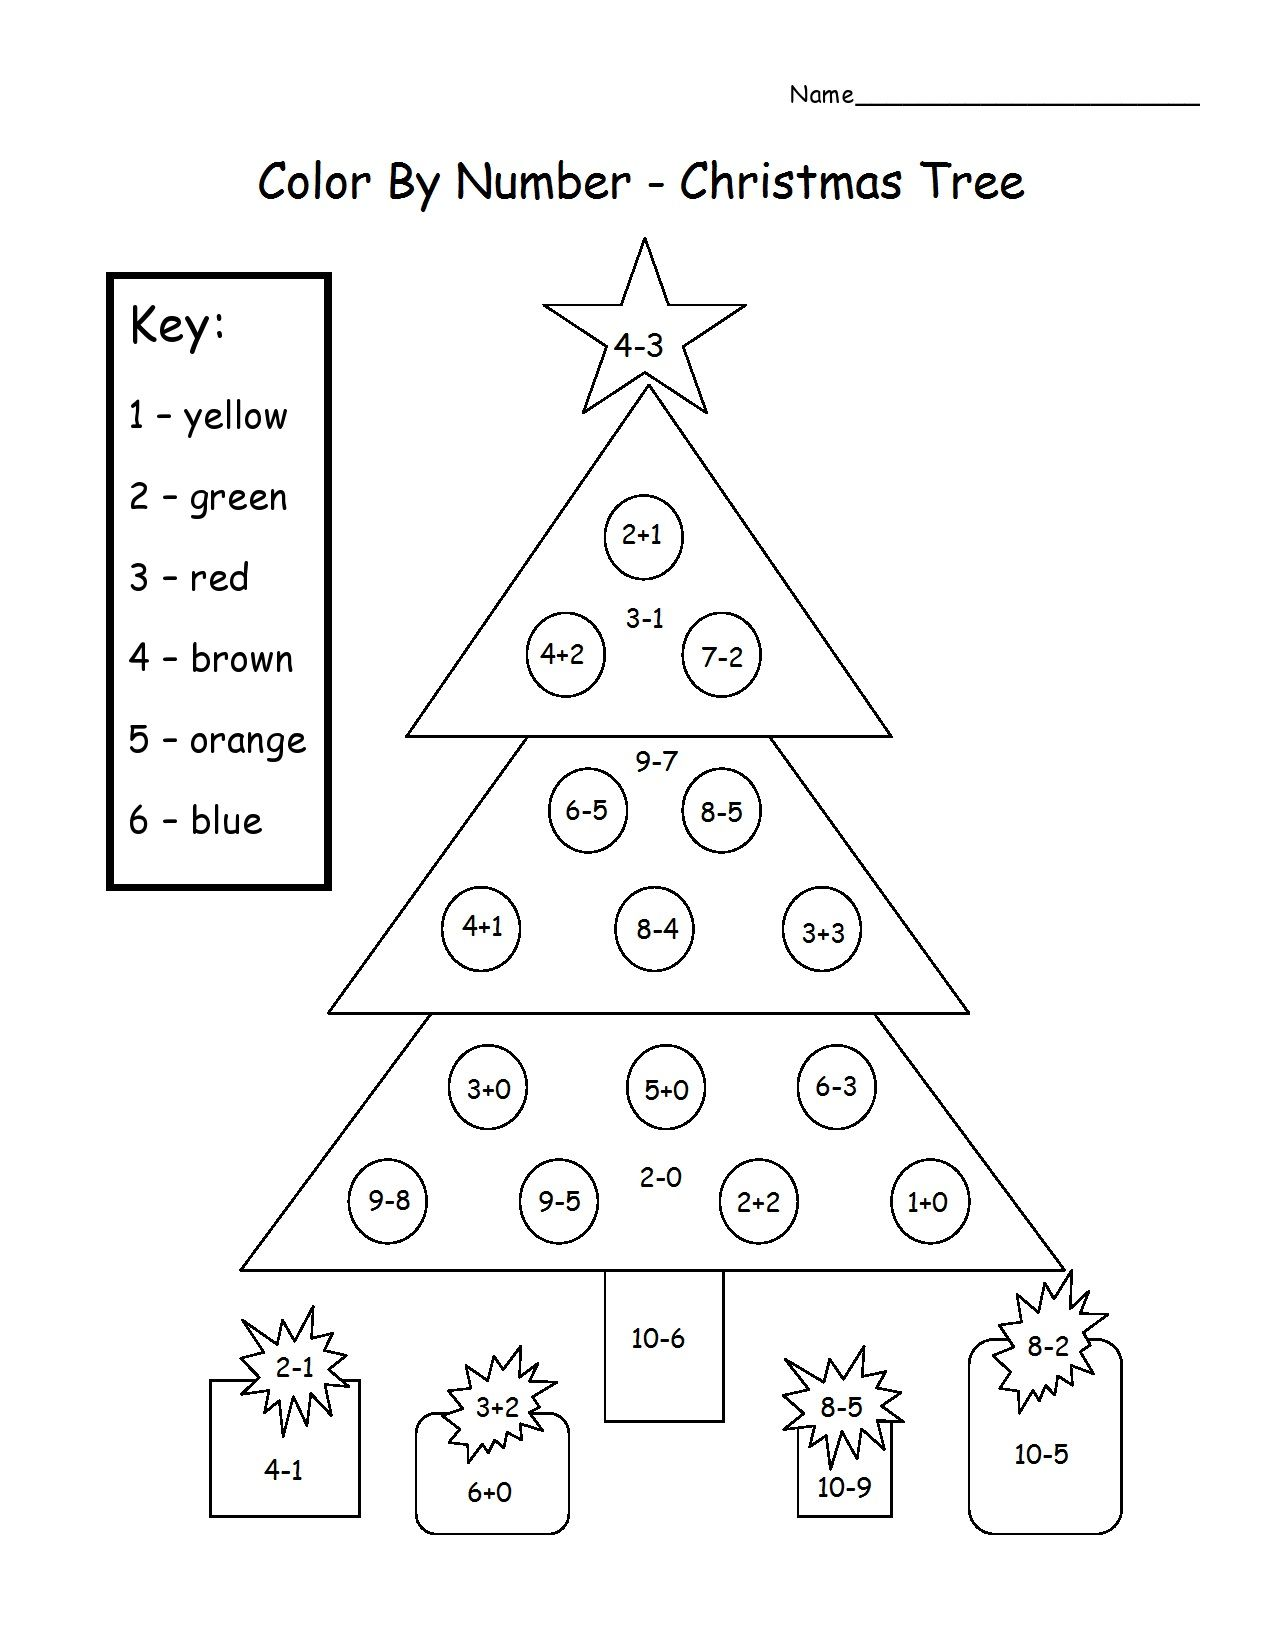 How Do You Decorate A Christmas Tree Worksheet